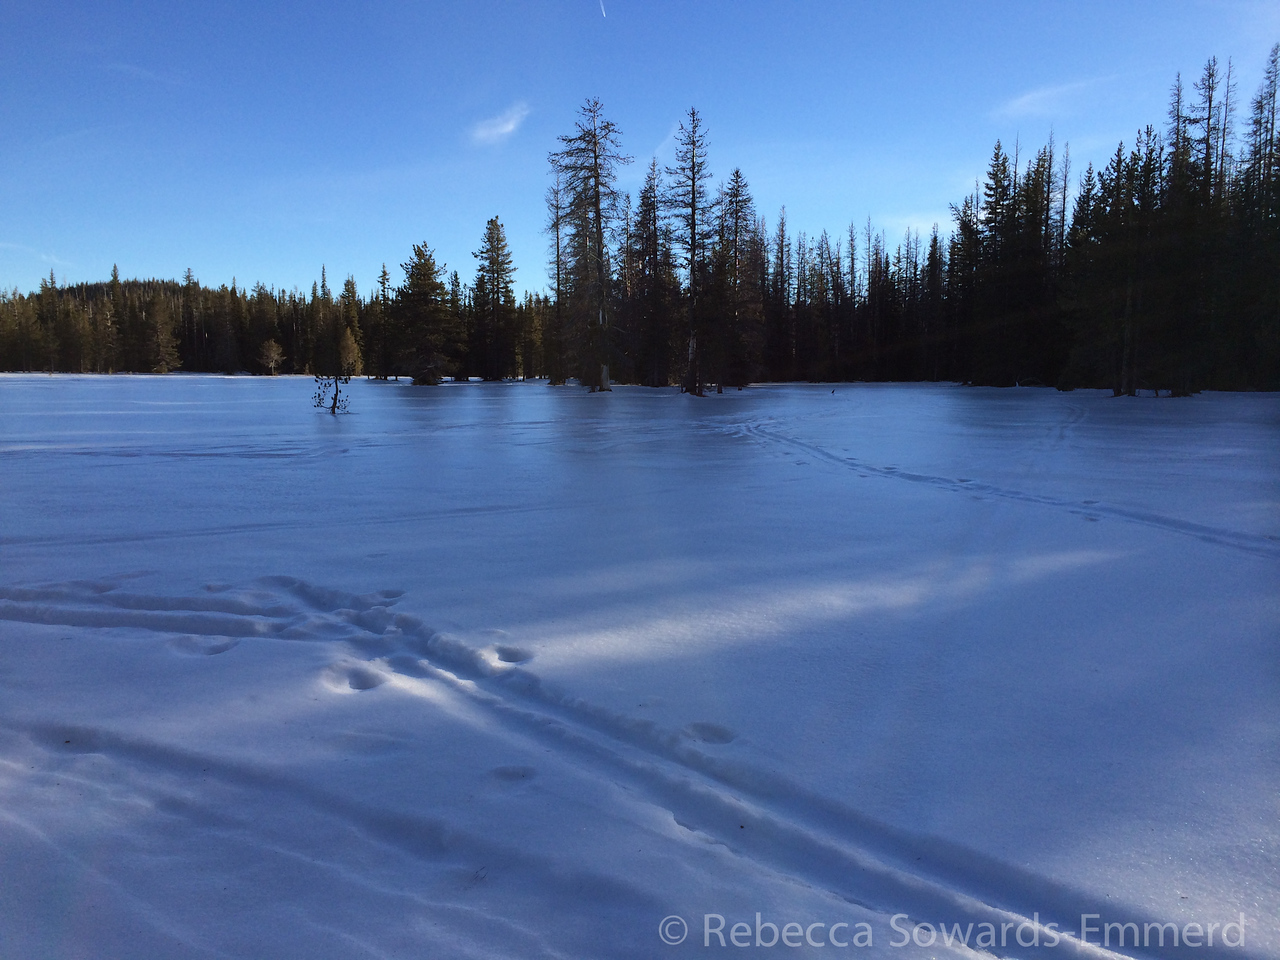 You can see the icy reflection on this meadow.